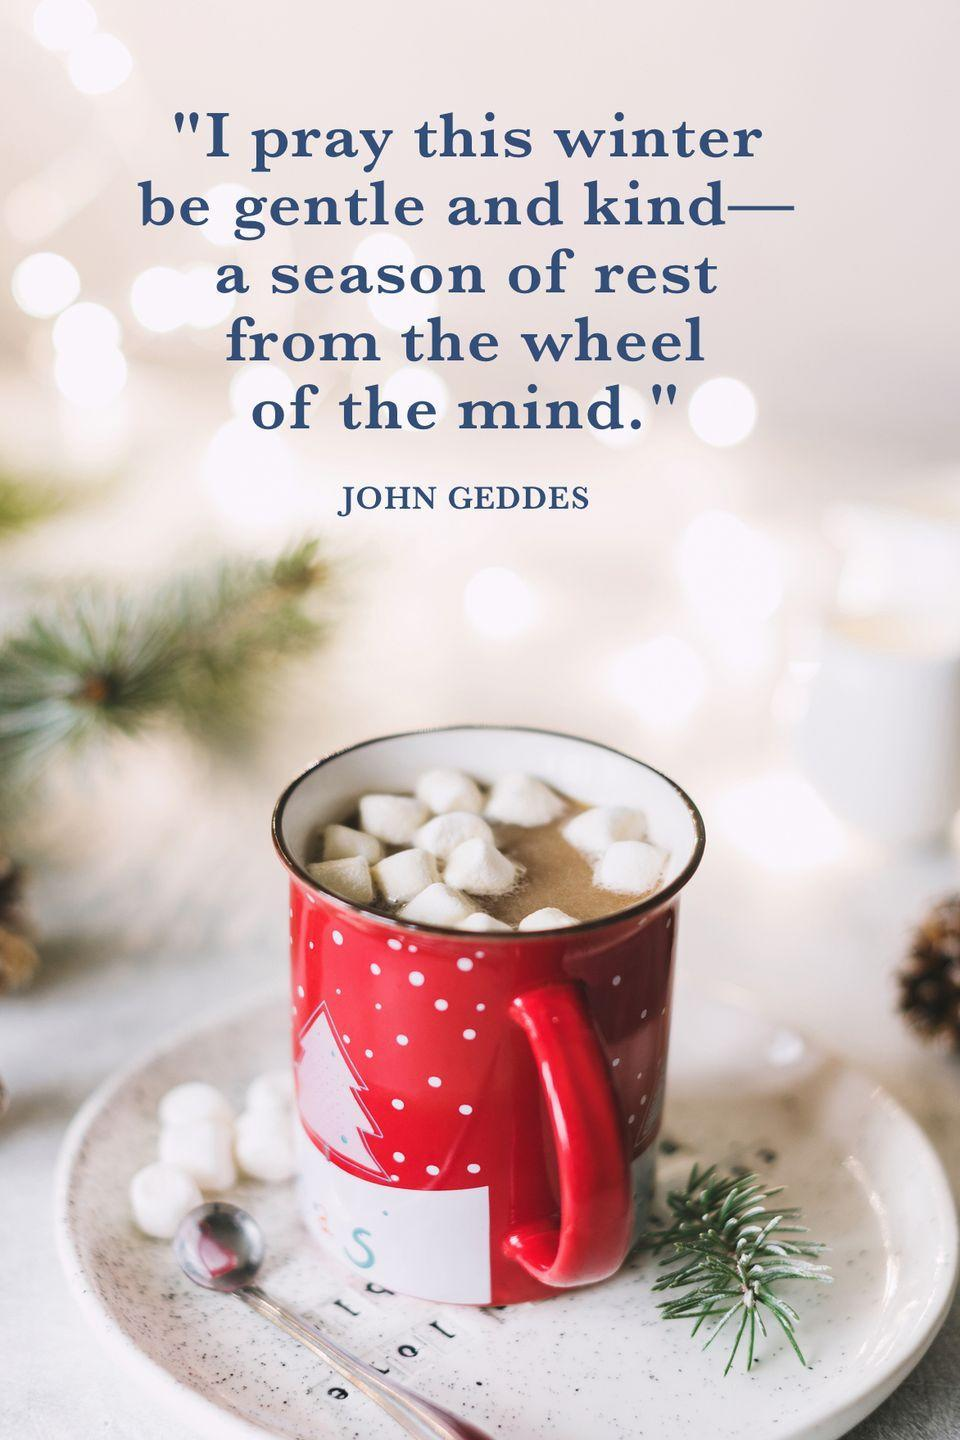 "<p>""I pray this winter be gentle and kind—a season of rest from the wheel of the mind.""</p>"